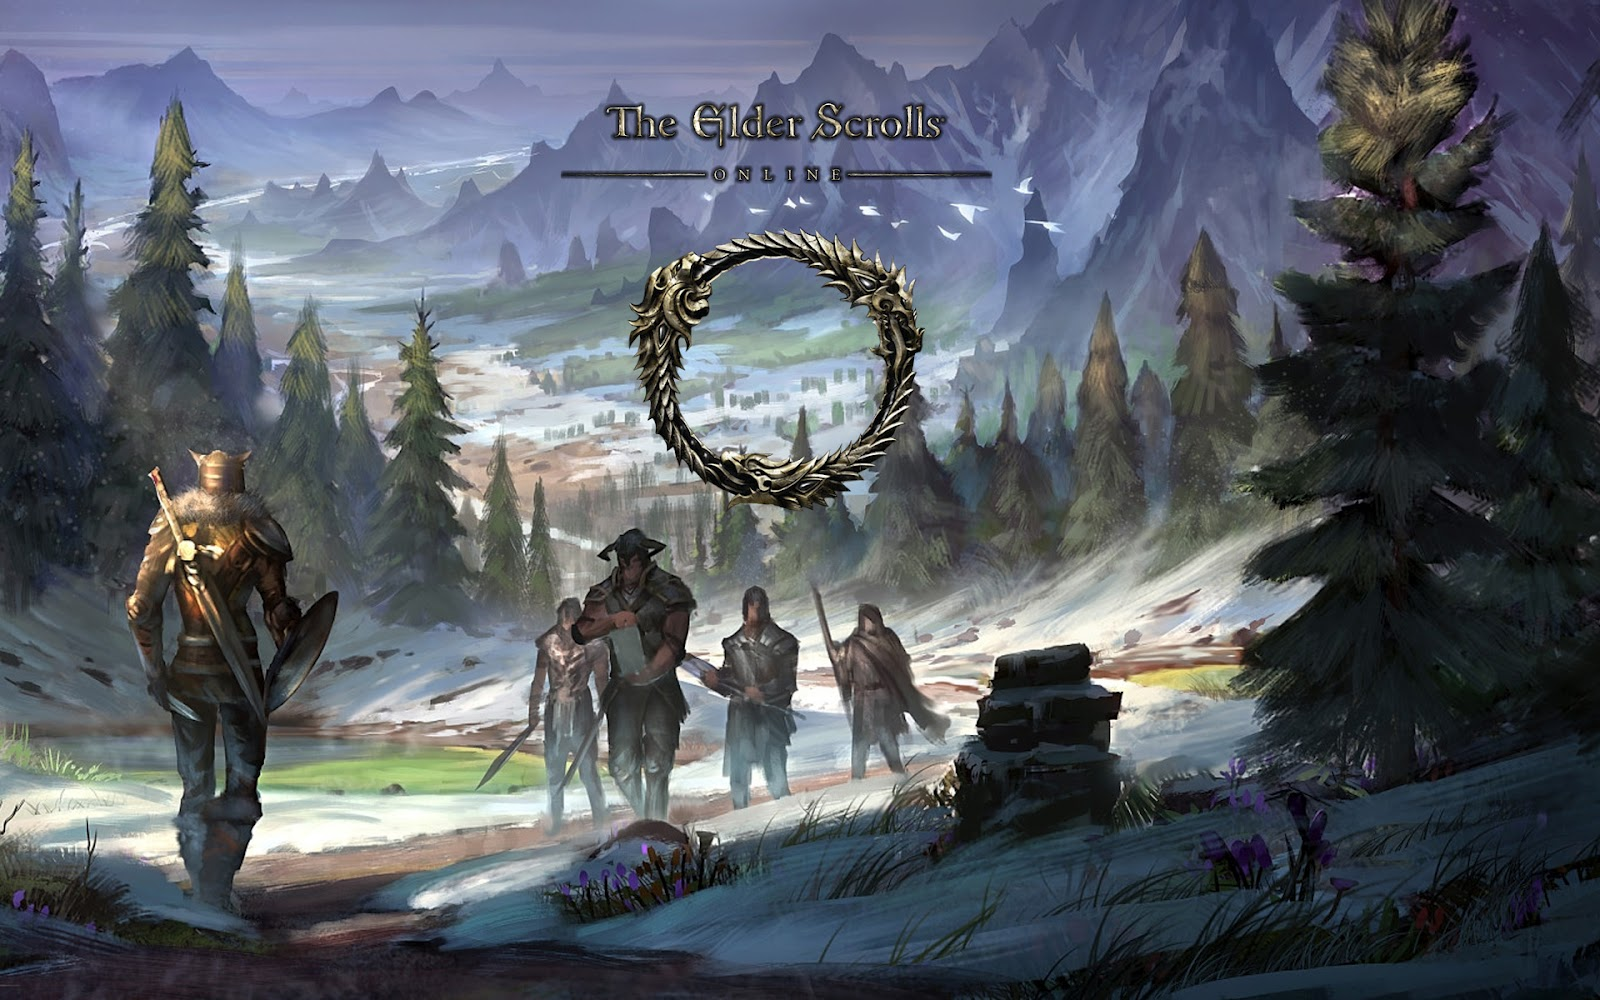 the_elder_scrolls_online_wallpaper_2-wid